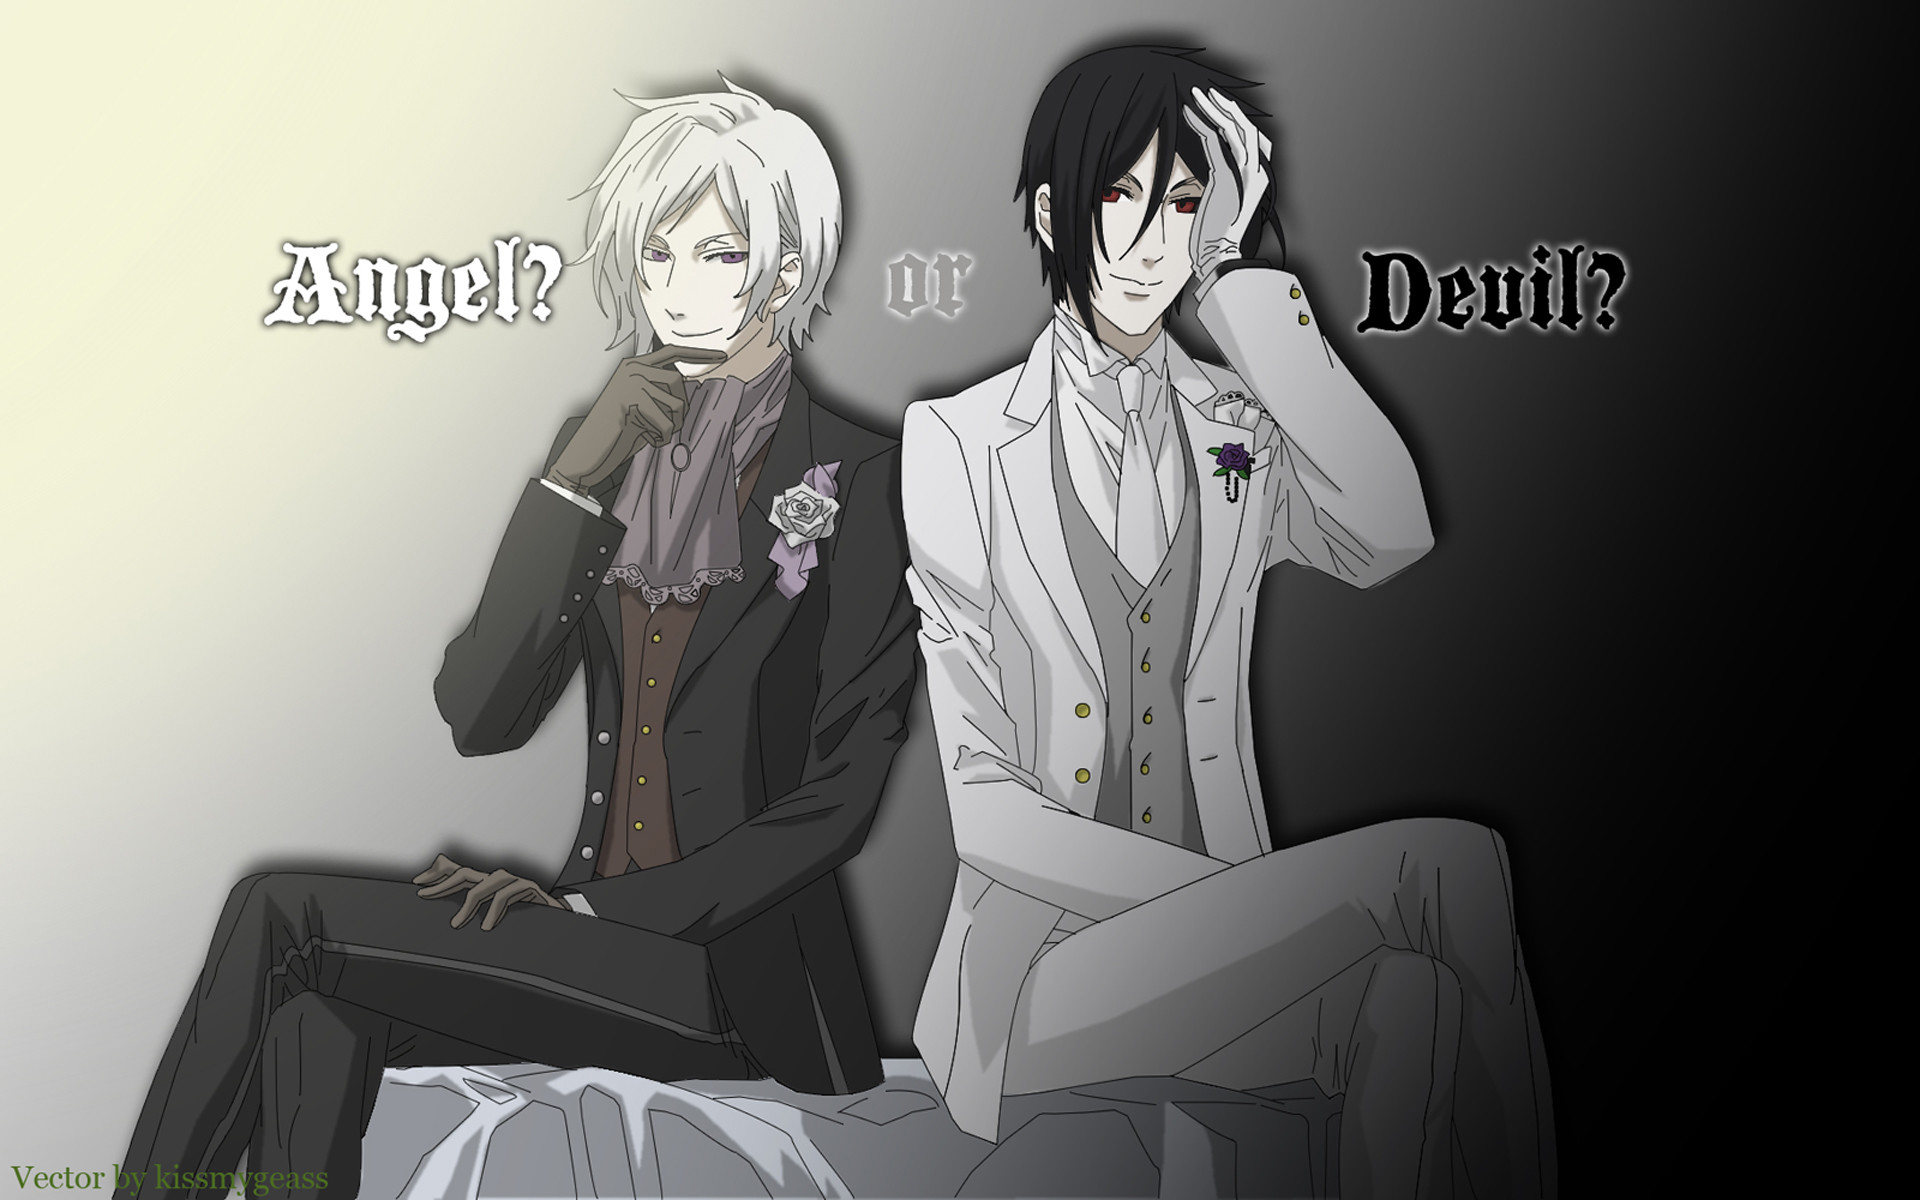 Res: 1920x1200, brunettes, angels, flowers, suit, demons, devil, Kuroshitsuji, Sebastian  Michaelis - Free Wallpaper / WallpaperJam.com